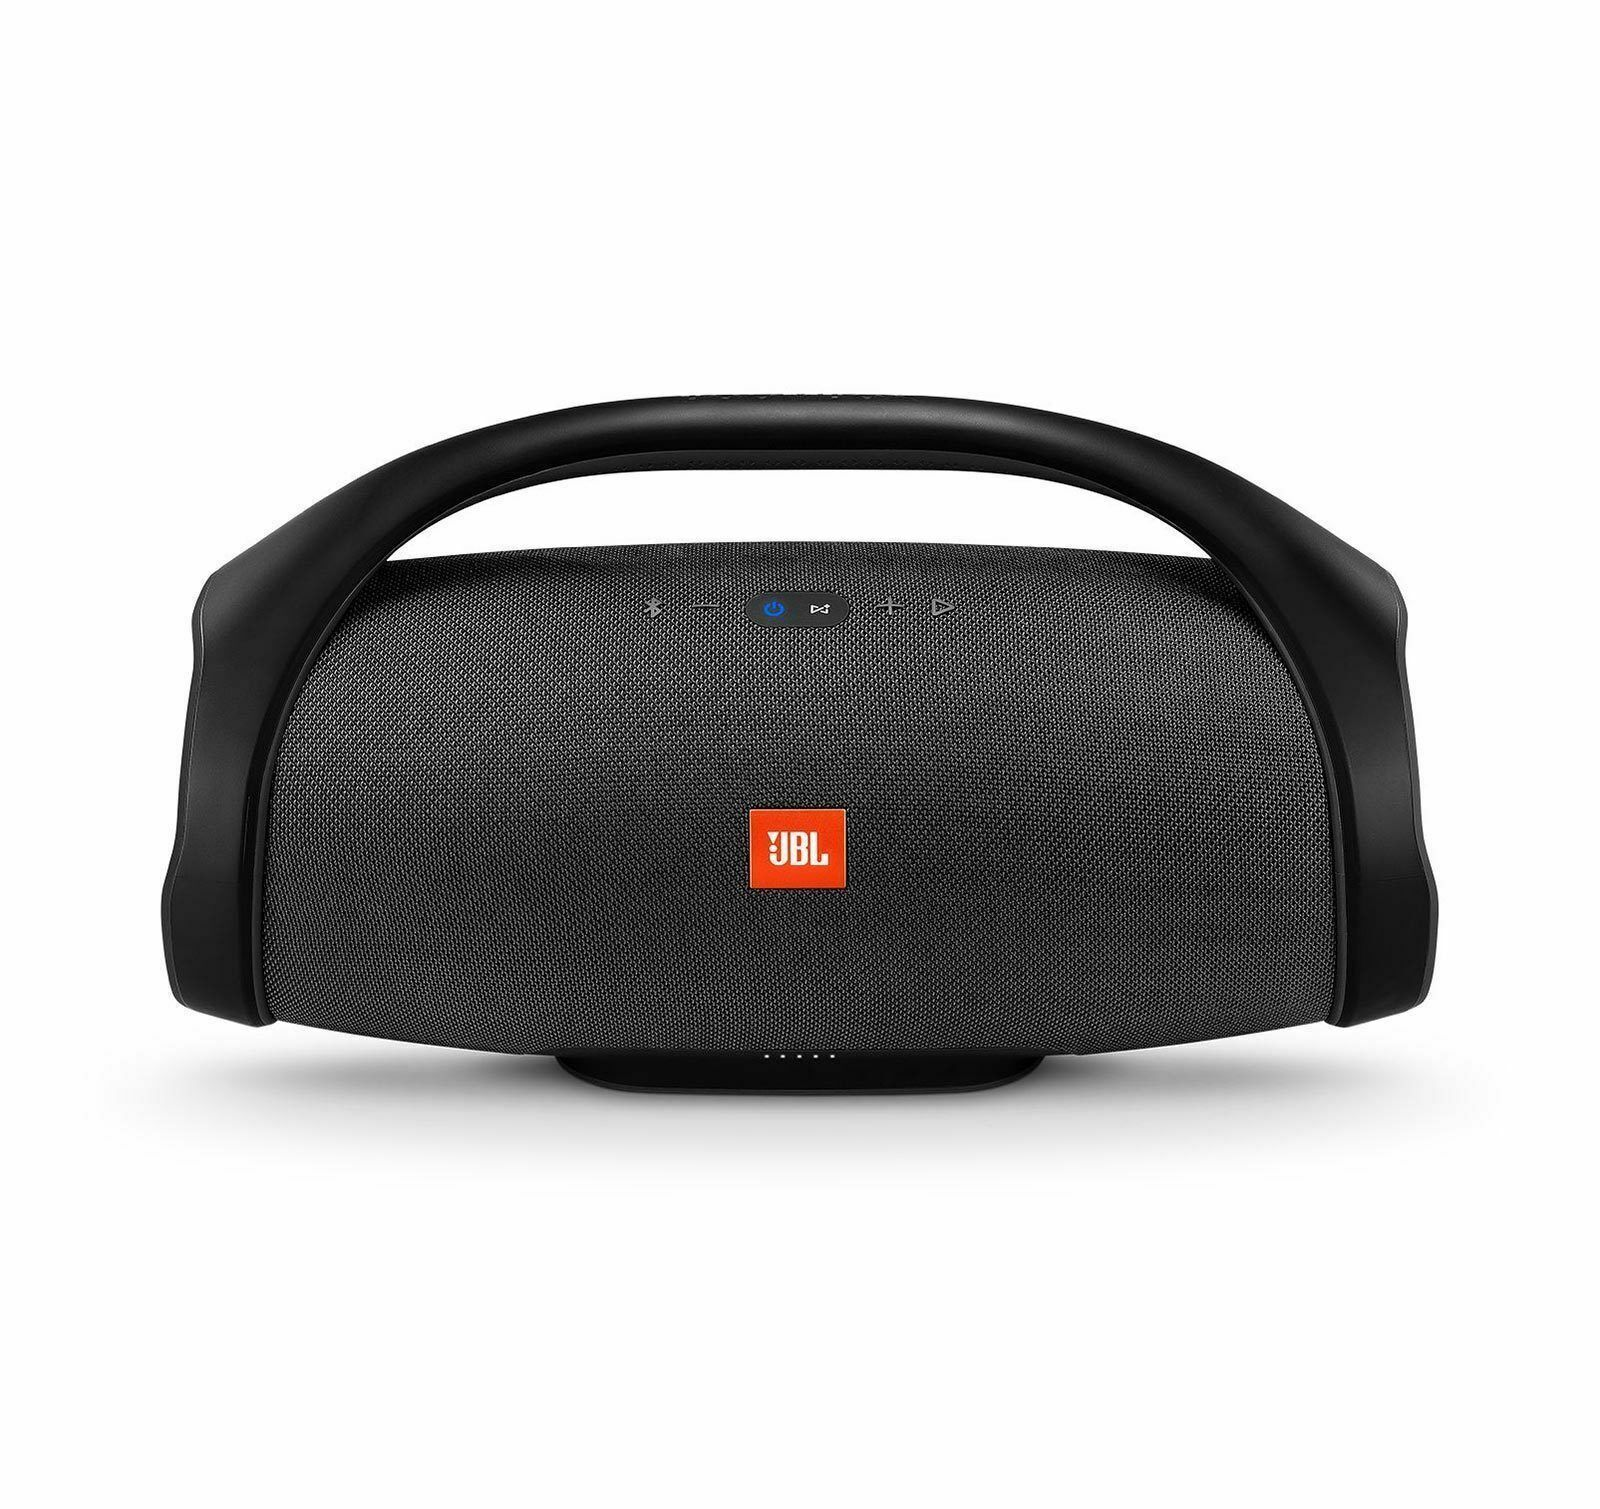 JBL Boombox Portable Bluetooth Waterproof Speaker